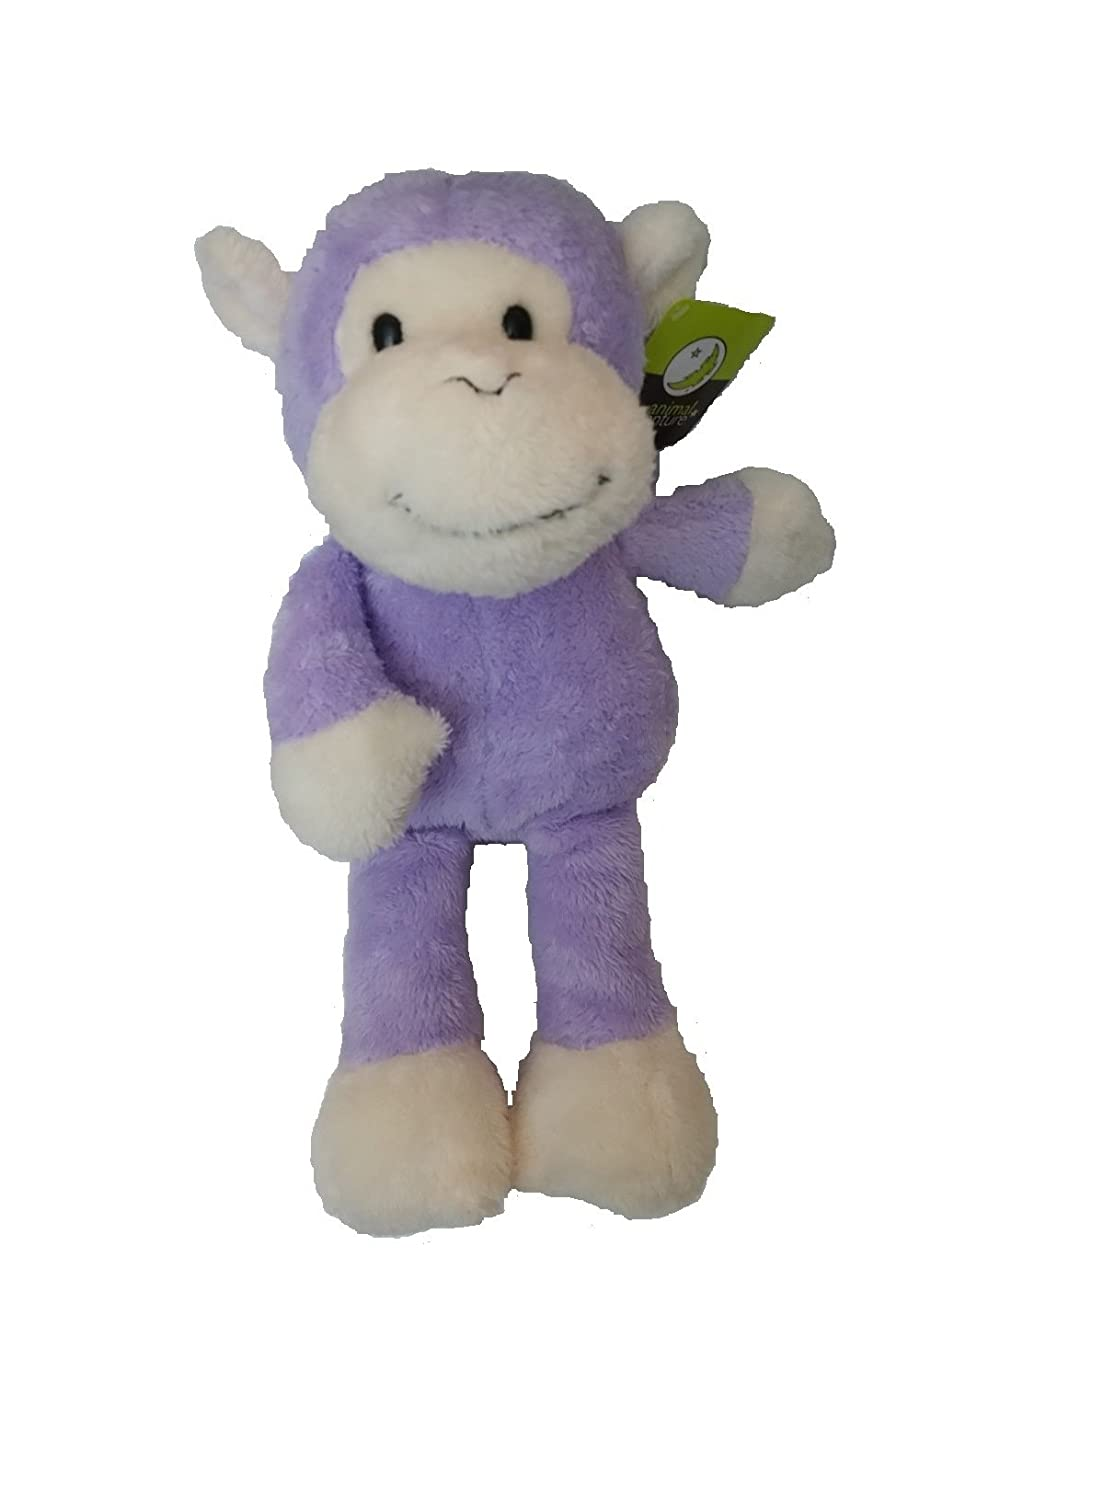 Perfect Cuddle Friend Animal Adventure Adorable Plush Monkey